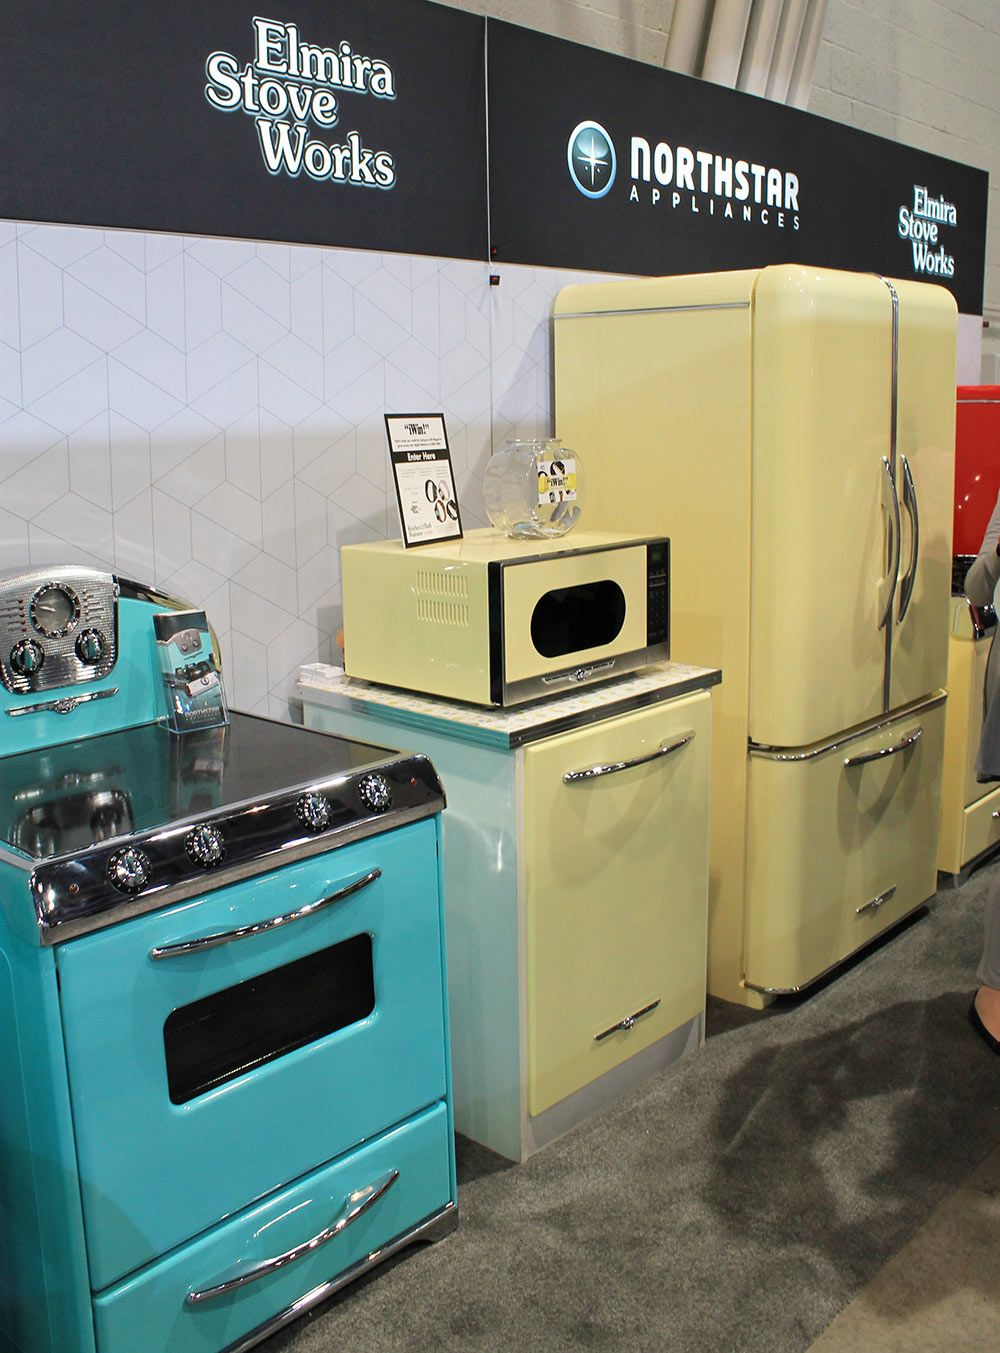 Yet Another Bright And Colorful Spot At KBIS 2016 Was The Northstar  Appliances Display From Elmira · Retro AppliancesRetro KitchensVintage ...